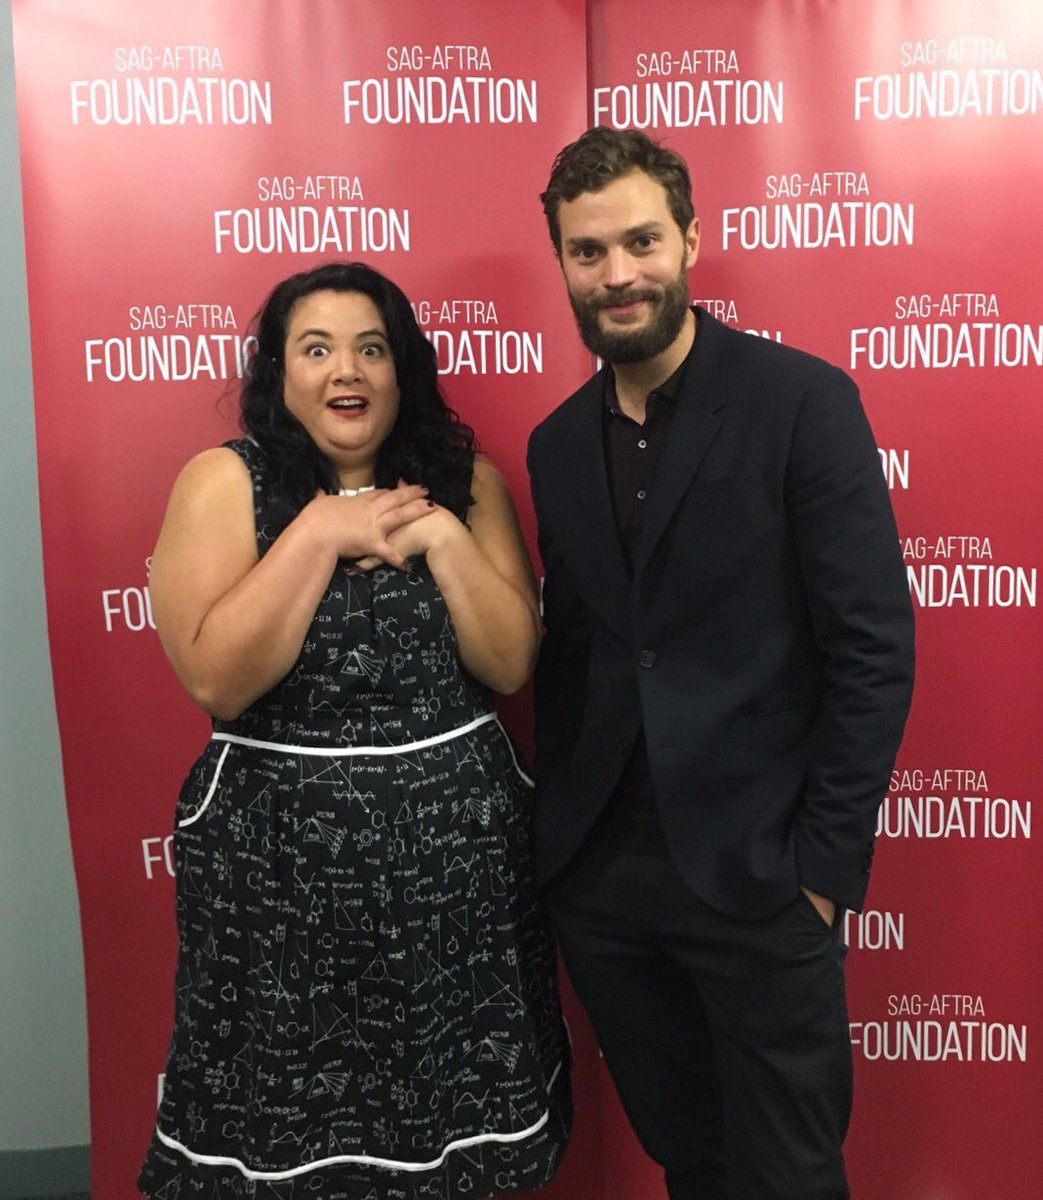 Jamie Dornan was a good sport when I told him I was up late watching THE FALL last night. https://t.co/aUycnu2Oaa